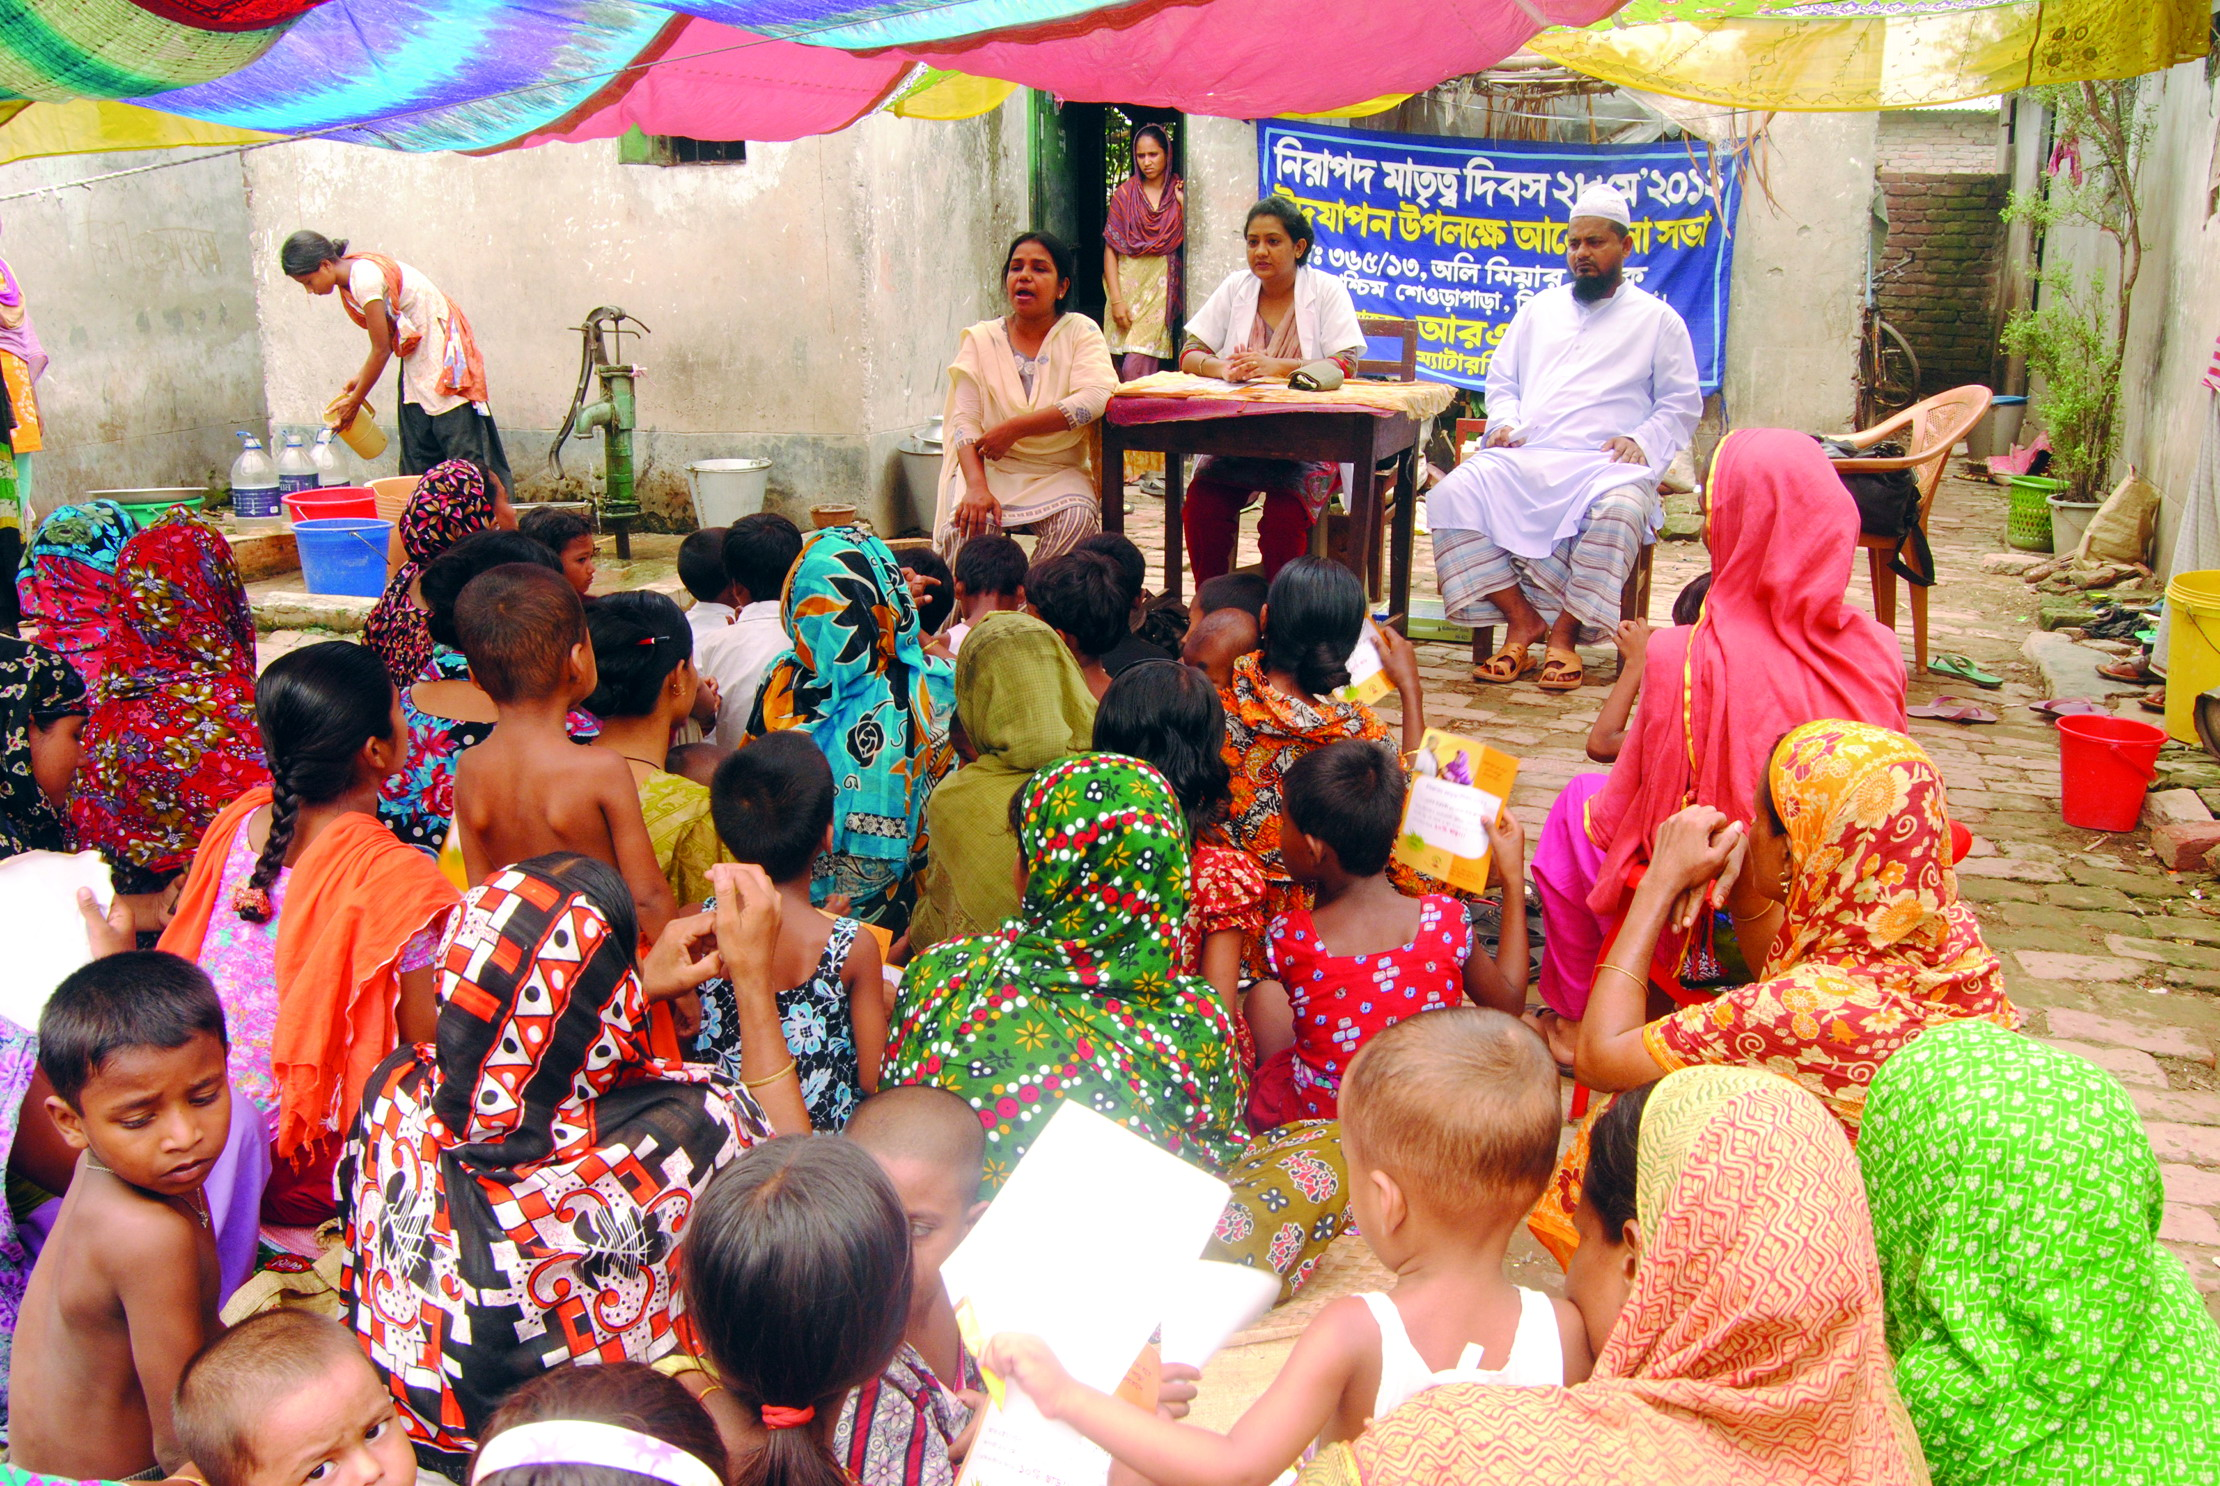 Open discussion with the women about SRHR on Safe Motherhood Day. Picture courtesy RHSTEP